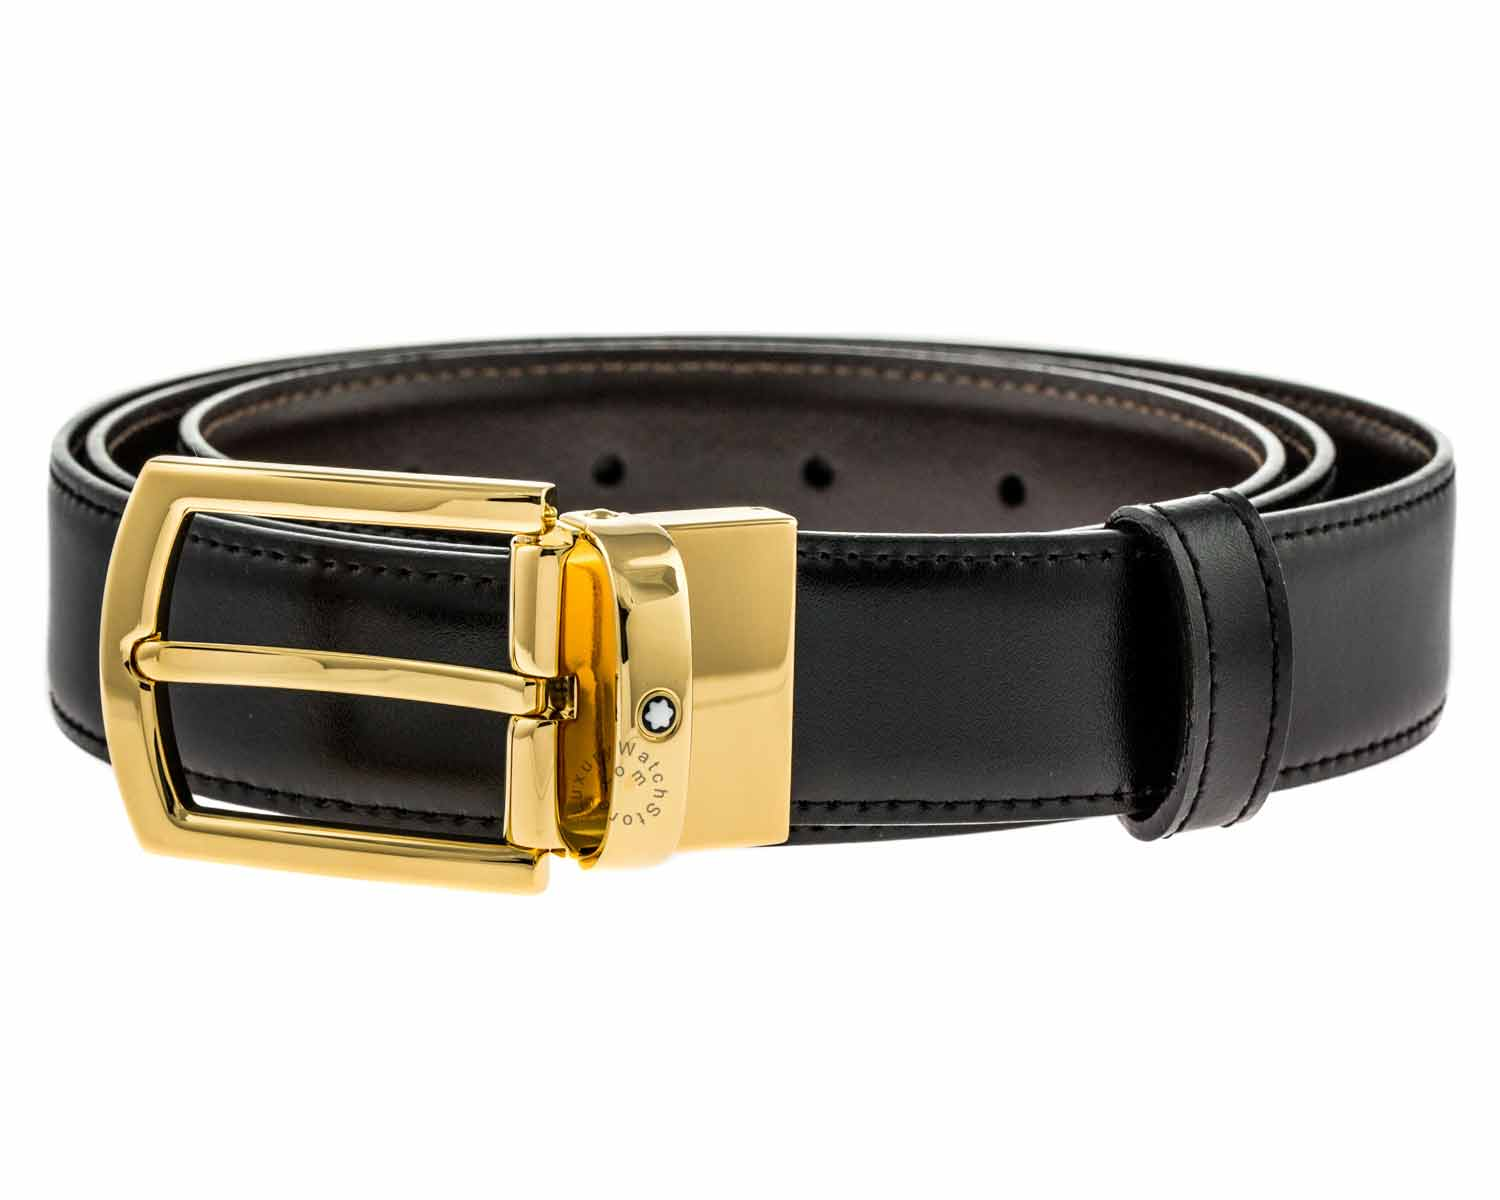 Montblanc Classic Line Men's Reversible Leather Belt 109739